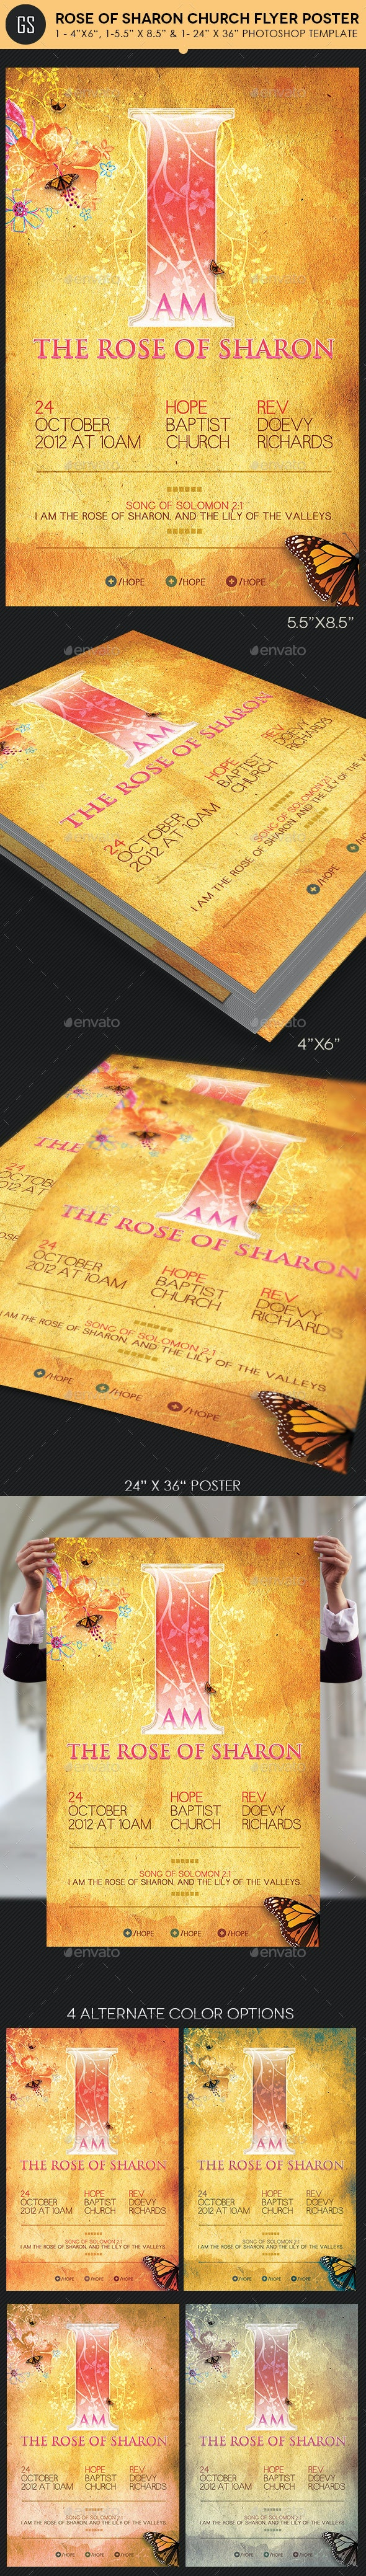 Rose of Sharon Church Flyer Poster Template - Church Flyers